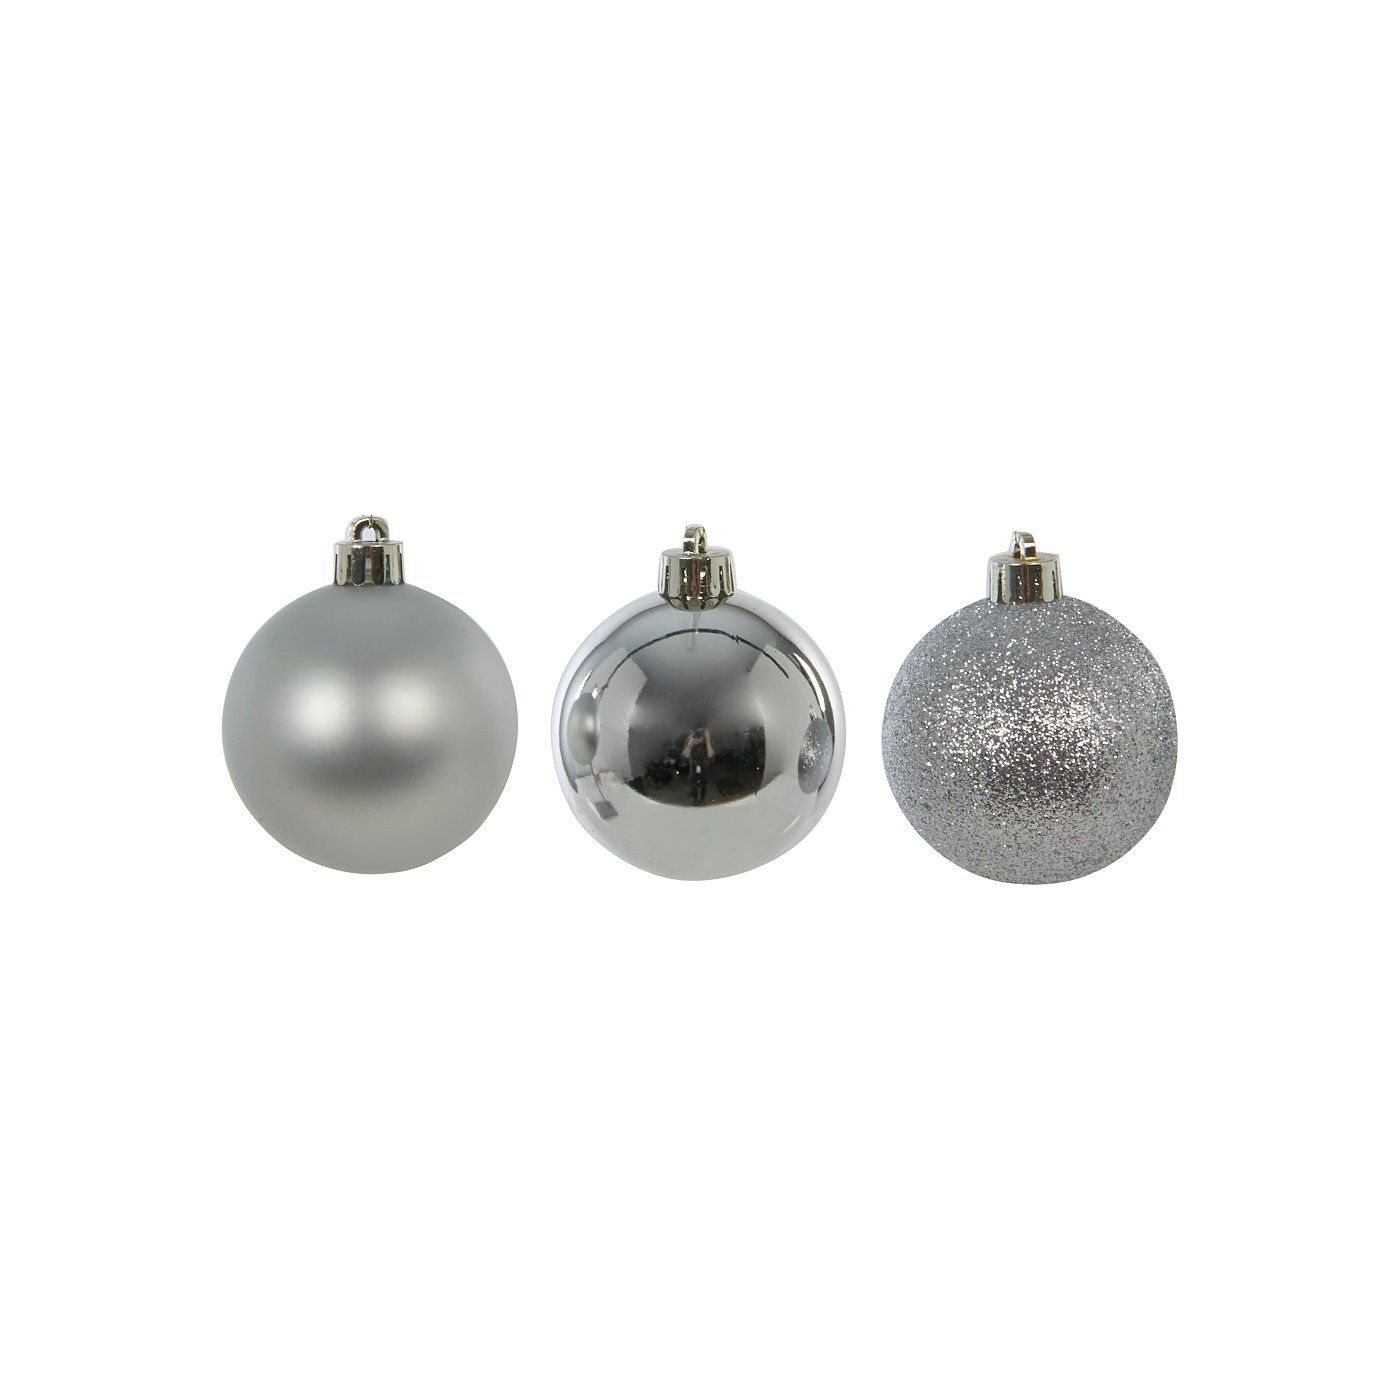 Silver Shatterproof Baubles 12 Pack Tree Decorations Asda Direct Shatterproof Silver Tree Decorations